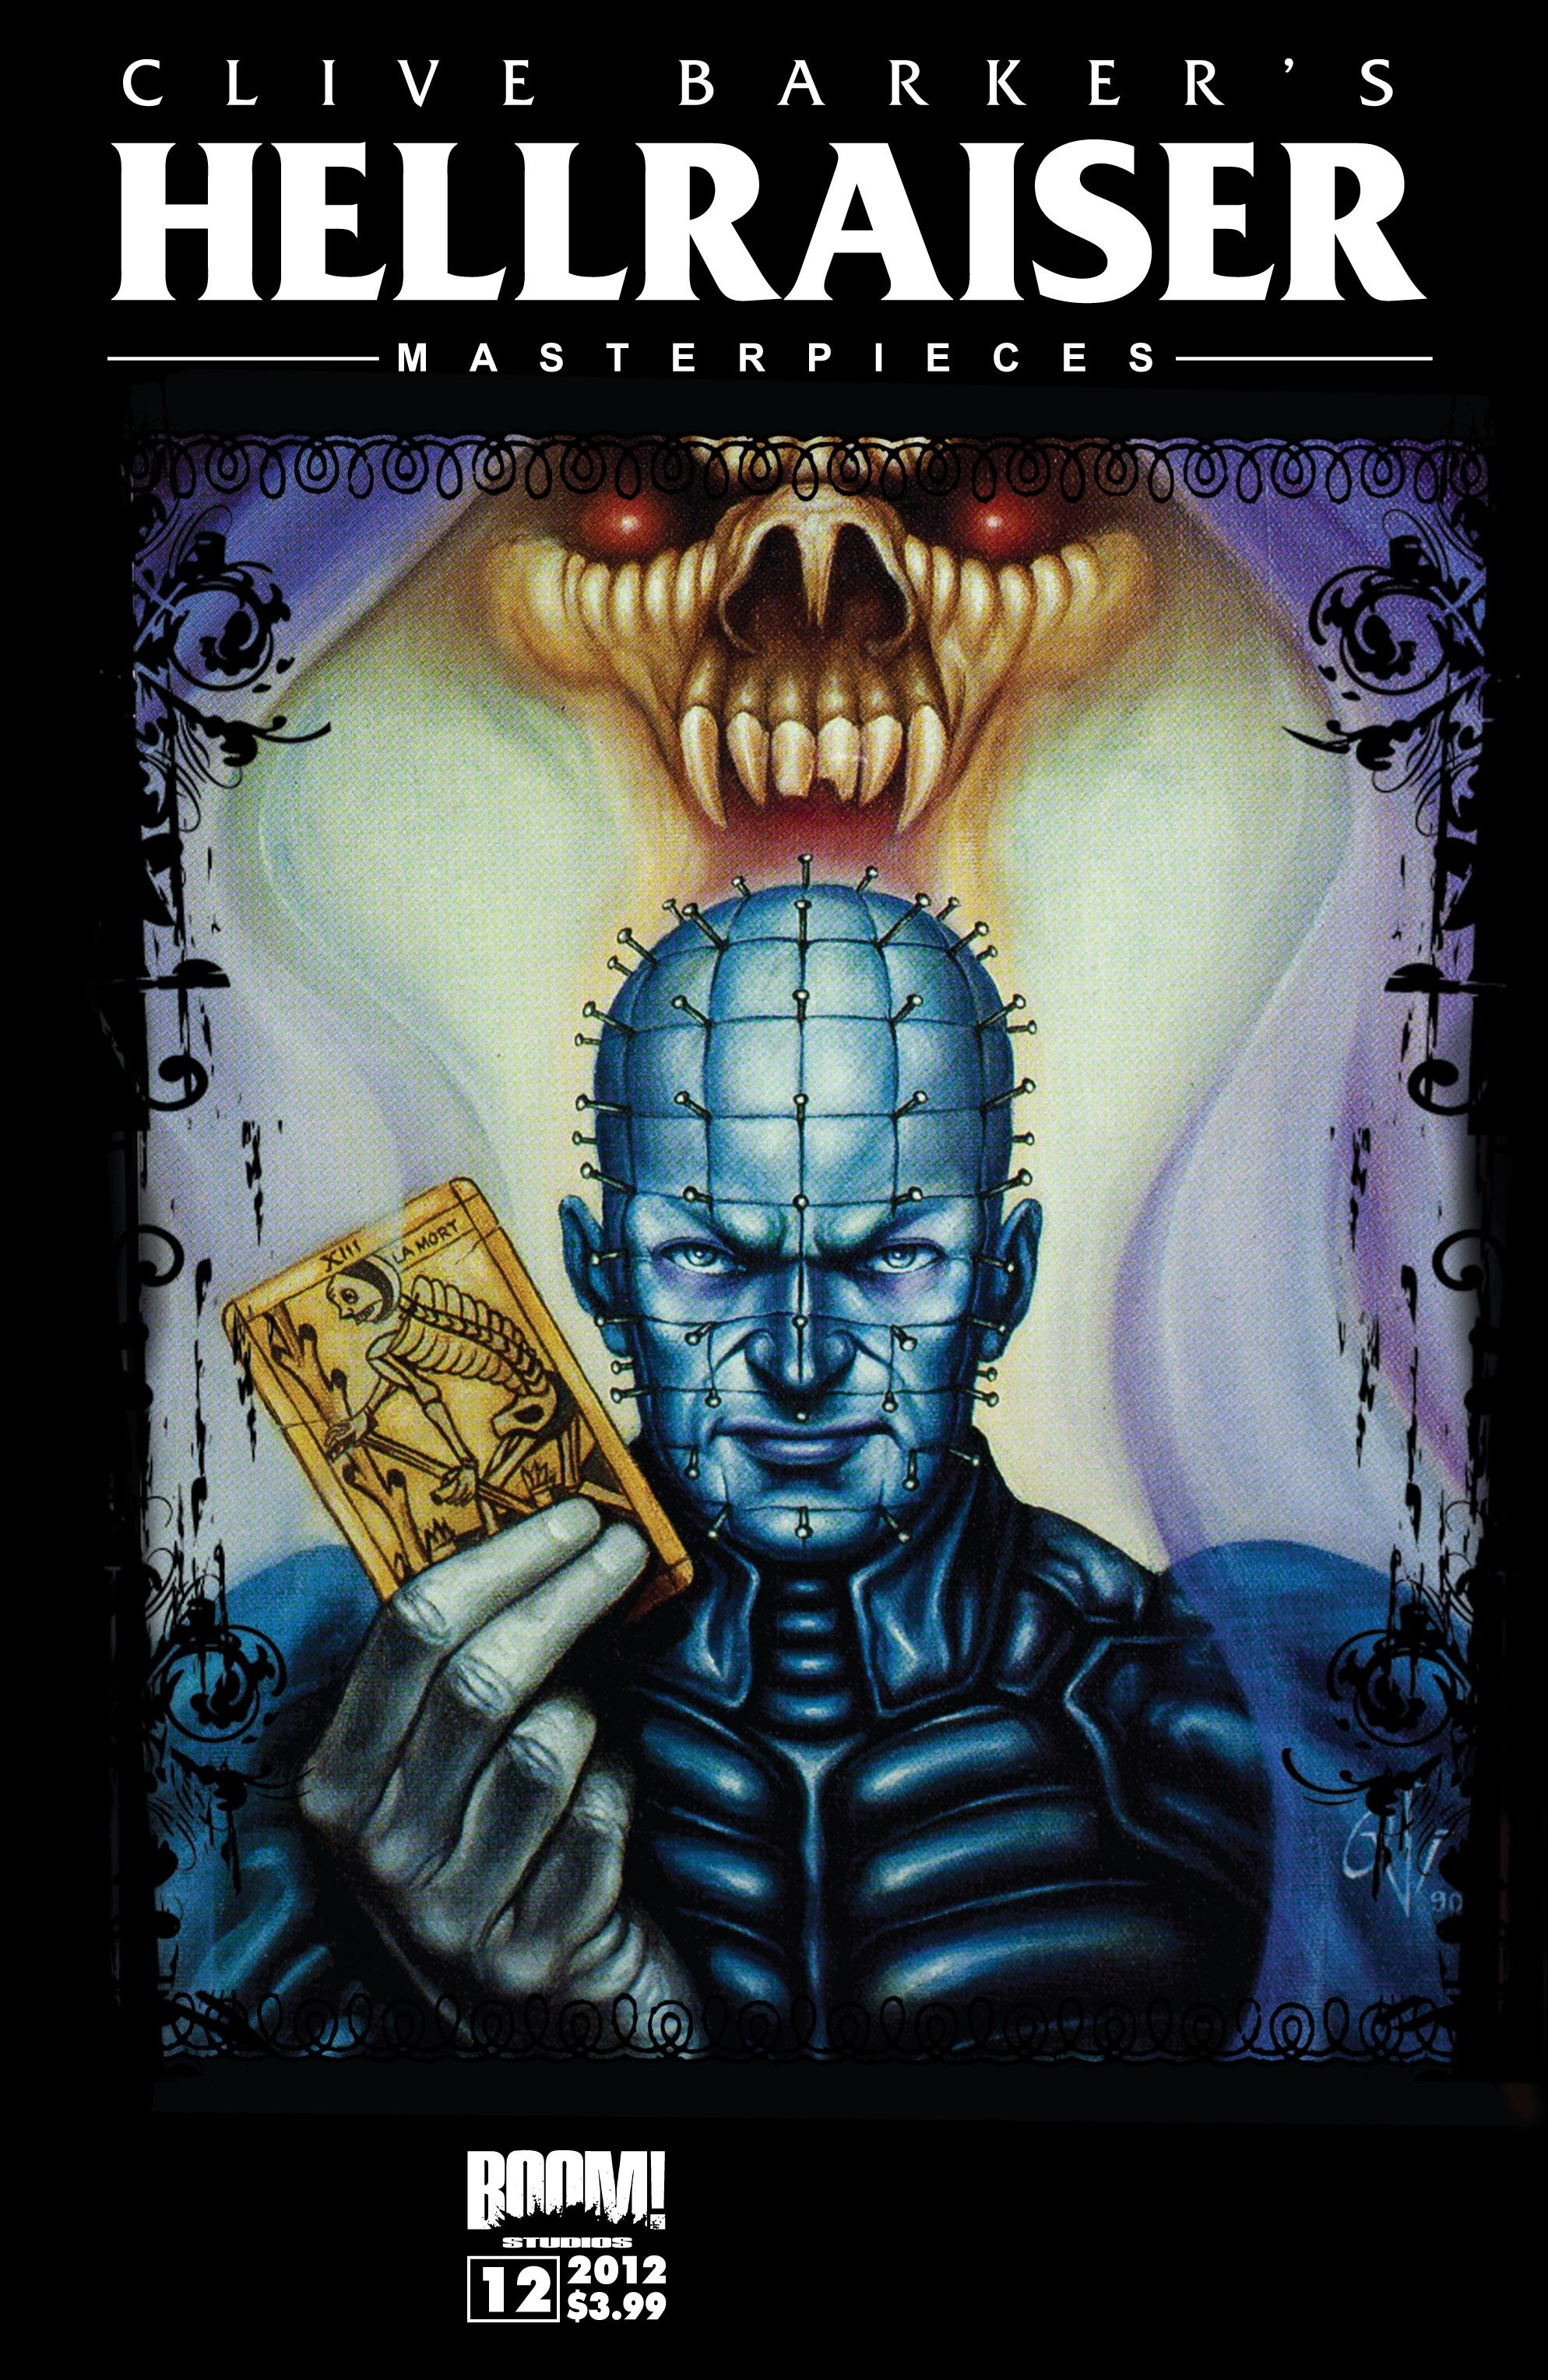 Clive Barkers Hellraiser Masterpieces 12 Page 1